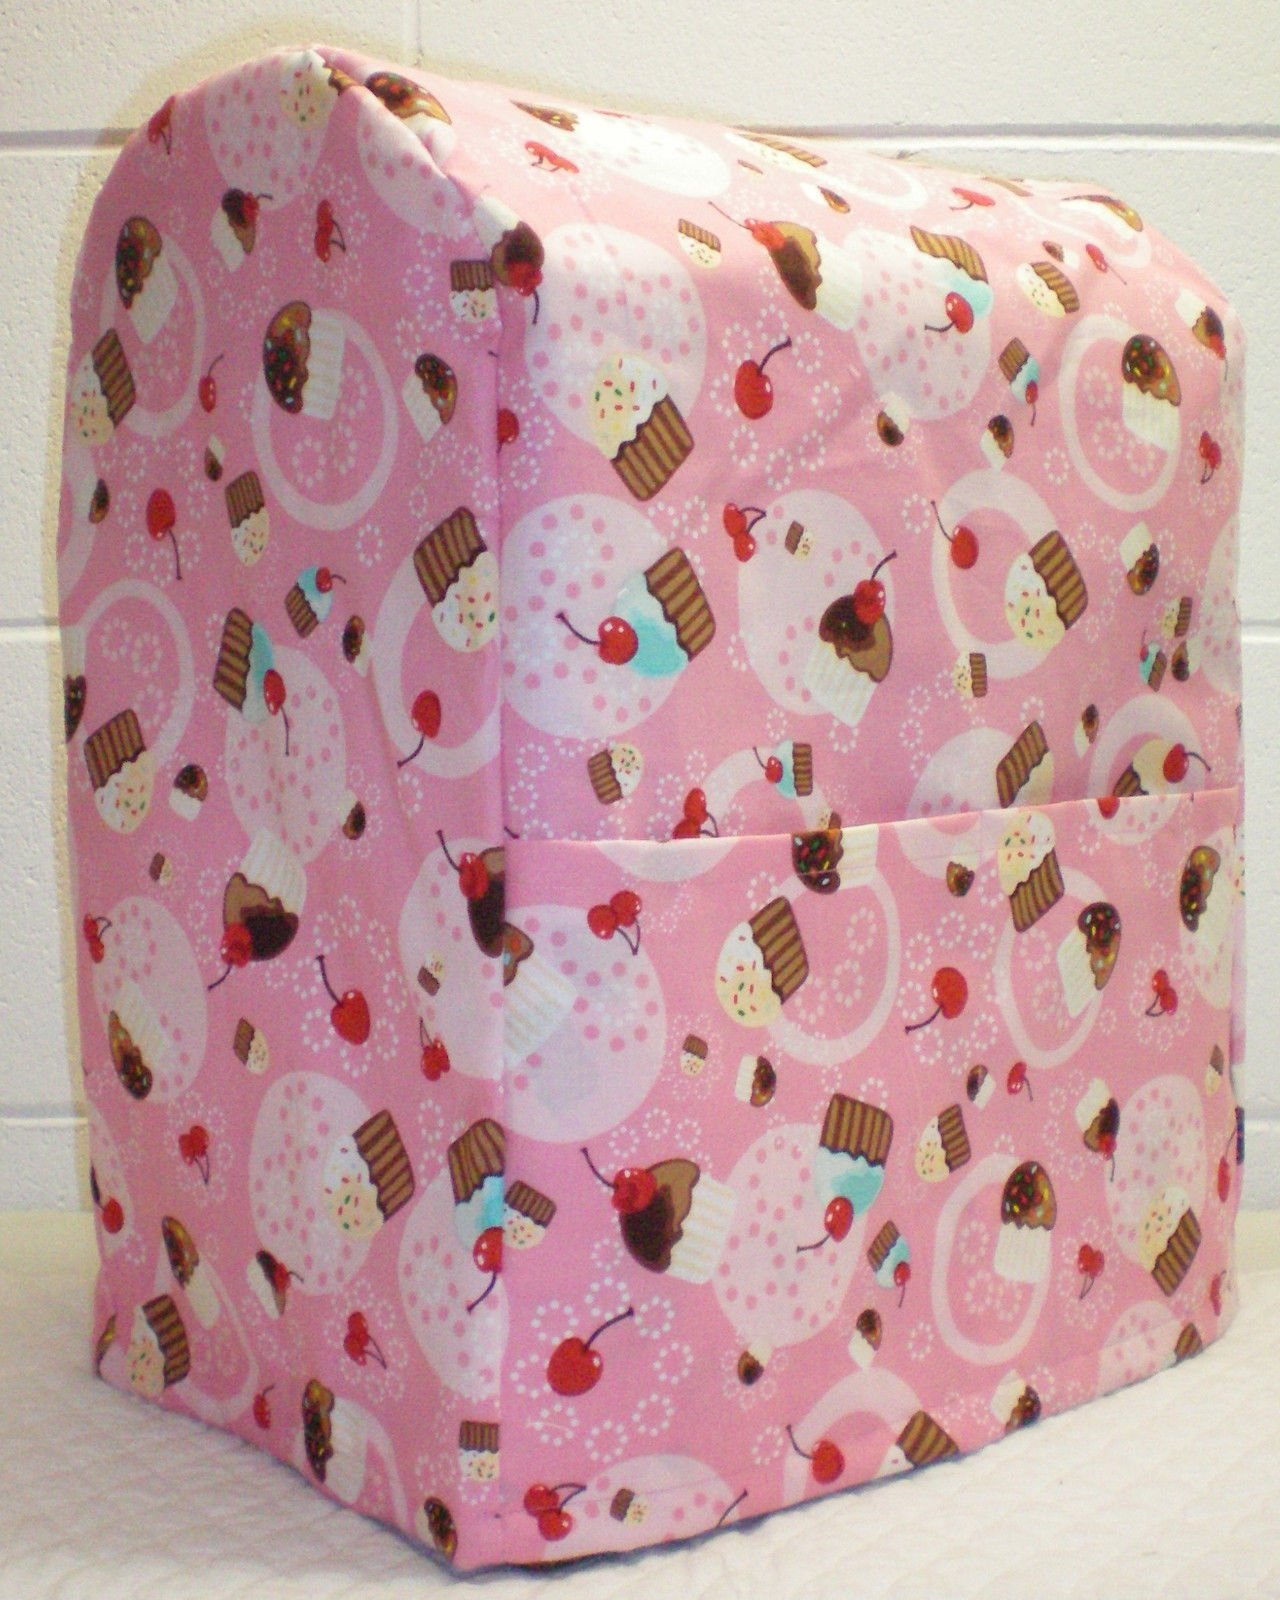 Penny's Needful Things Pink Cupcake Cover Compatible for Kitchenaid Stand Mixer (All Pink Cupcake, 4.5,5,6qt Lift Bowl)